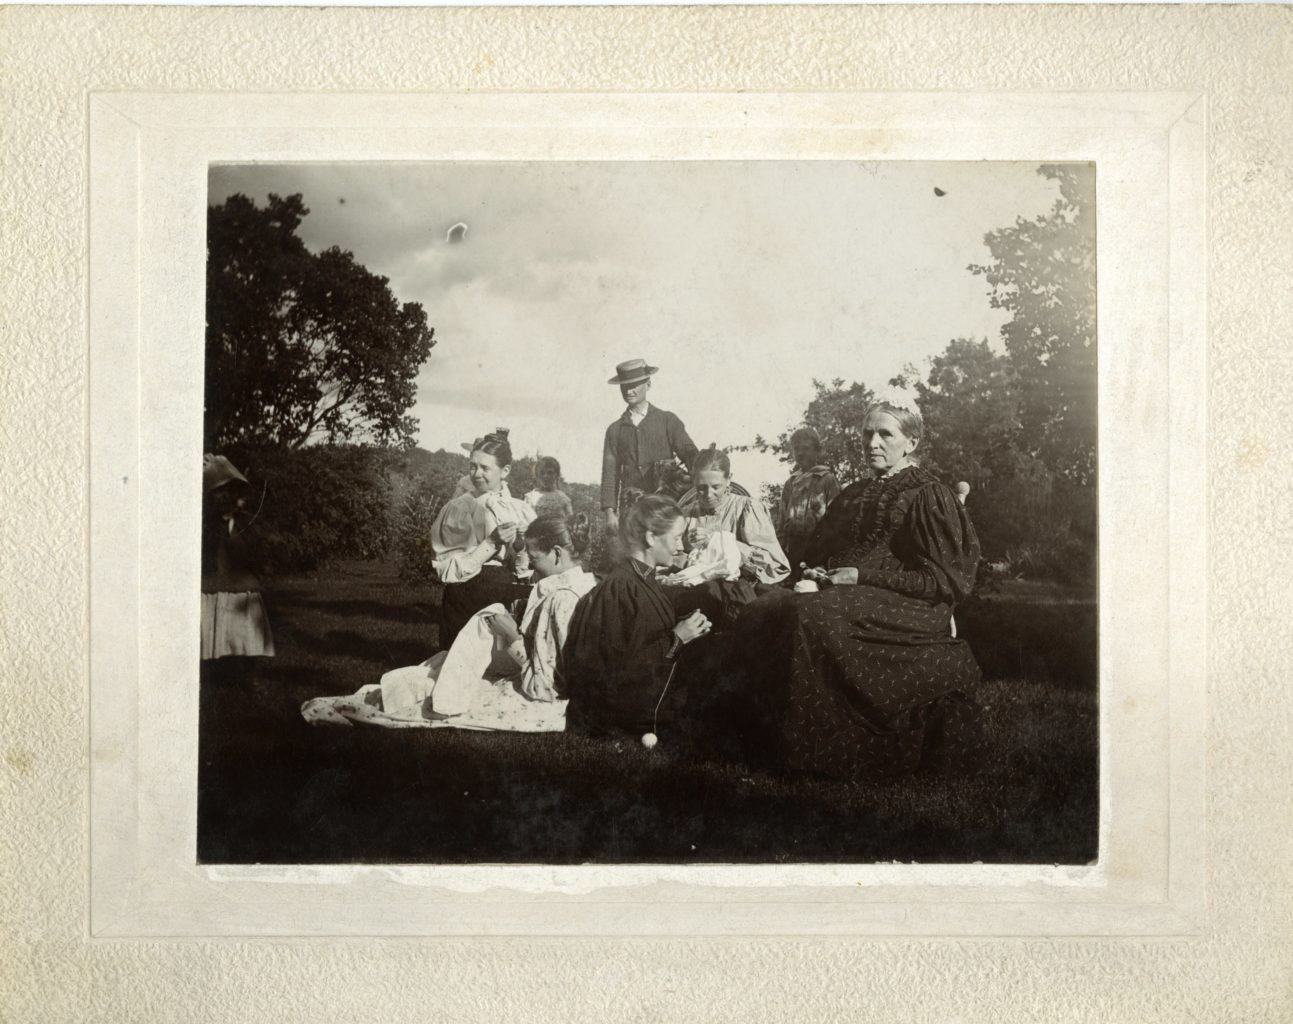 About ten people sit together at the Washington Prairie Parsonage